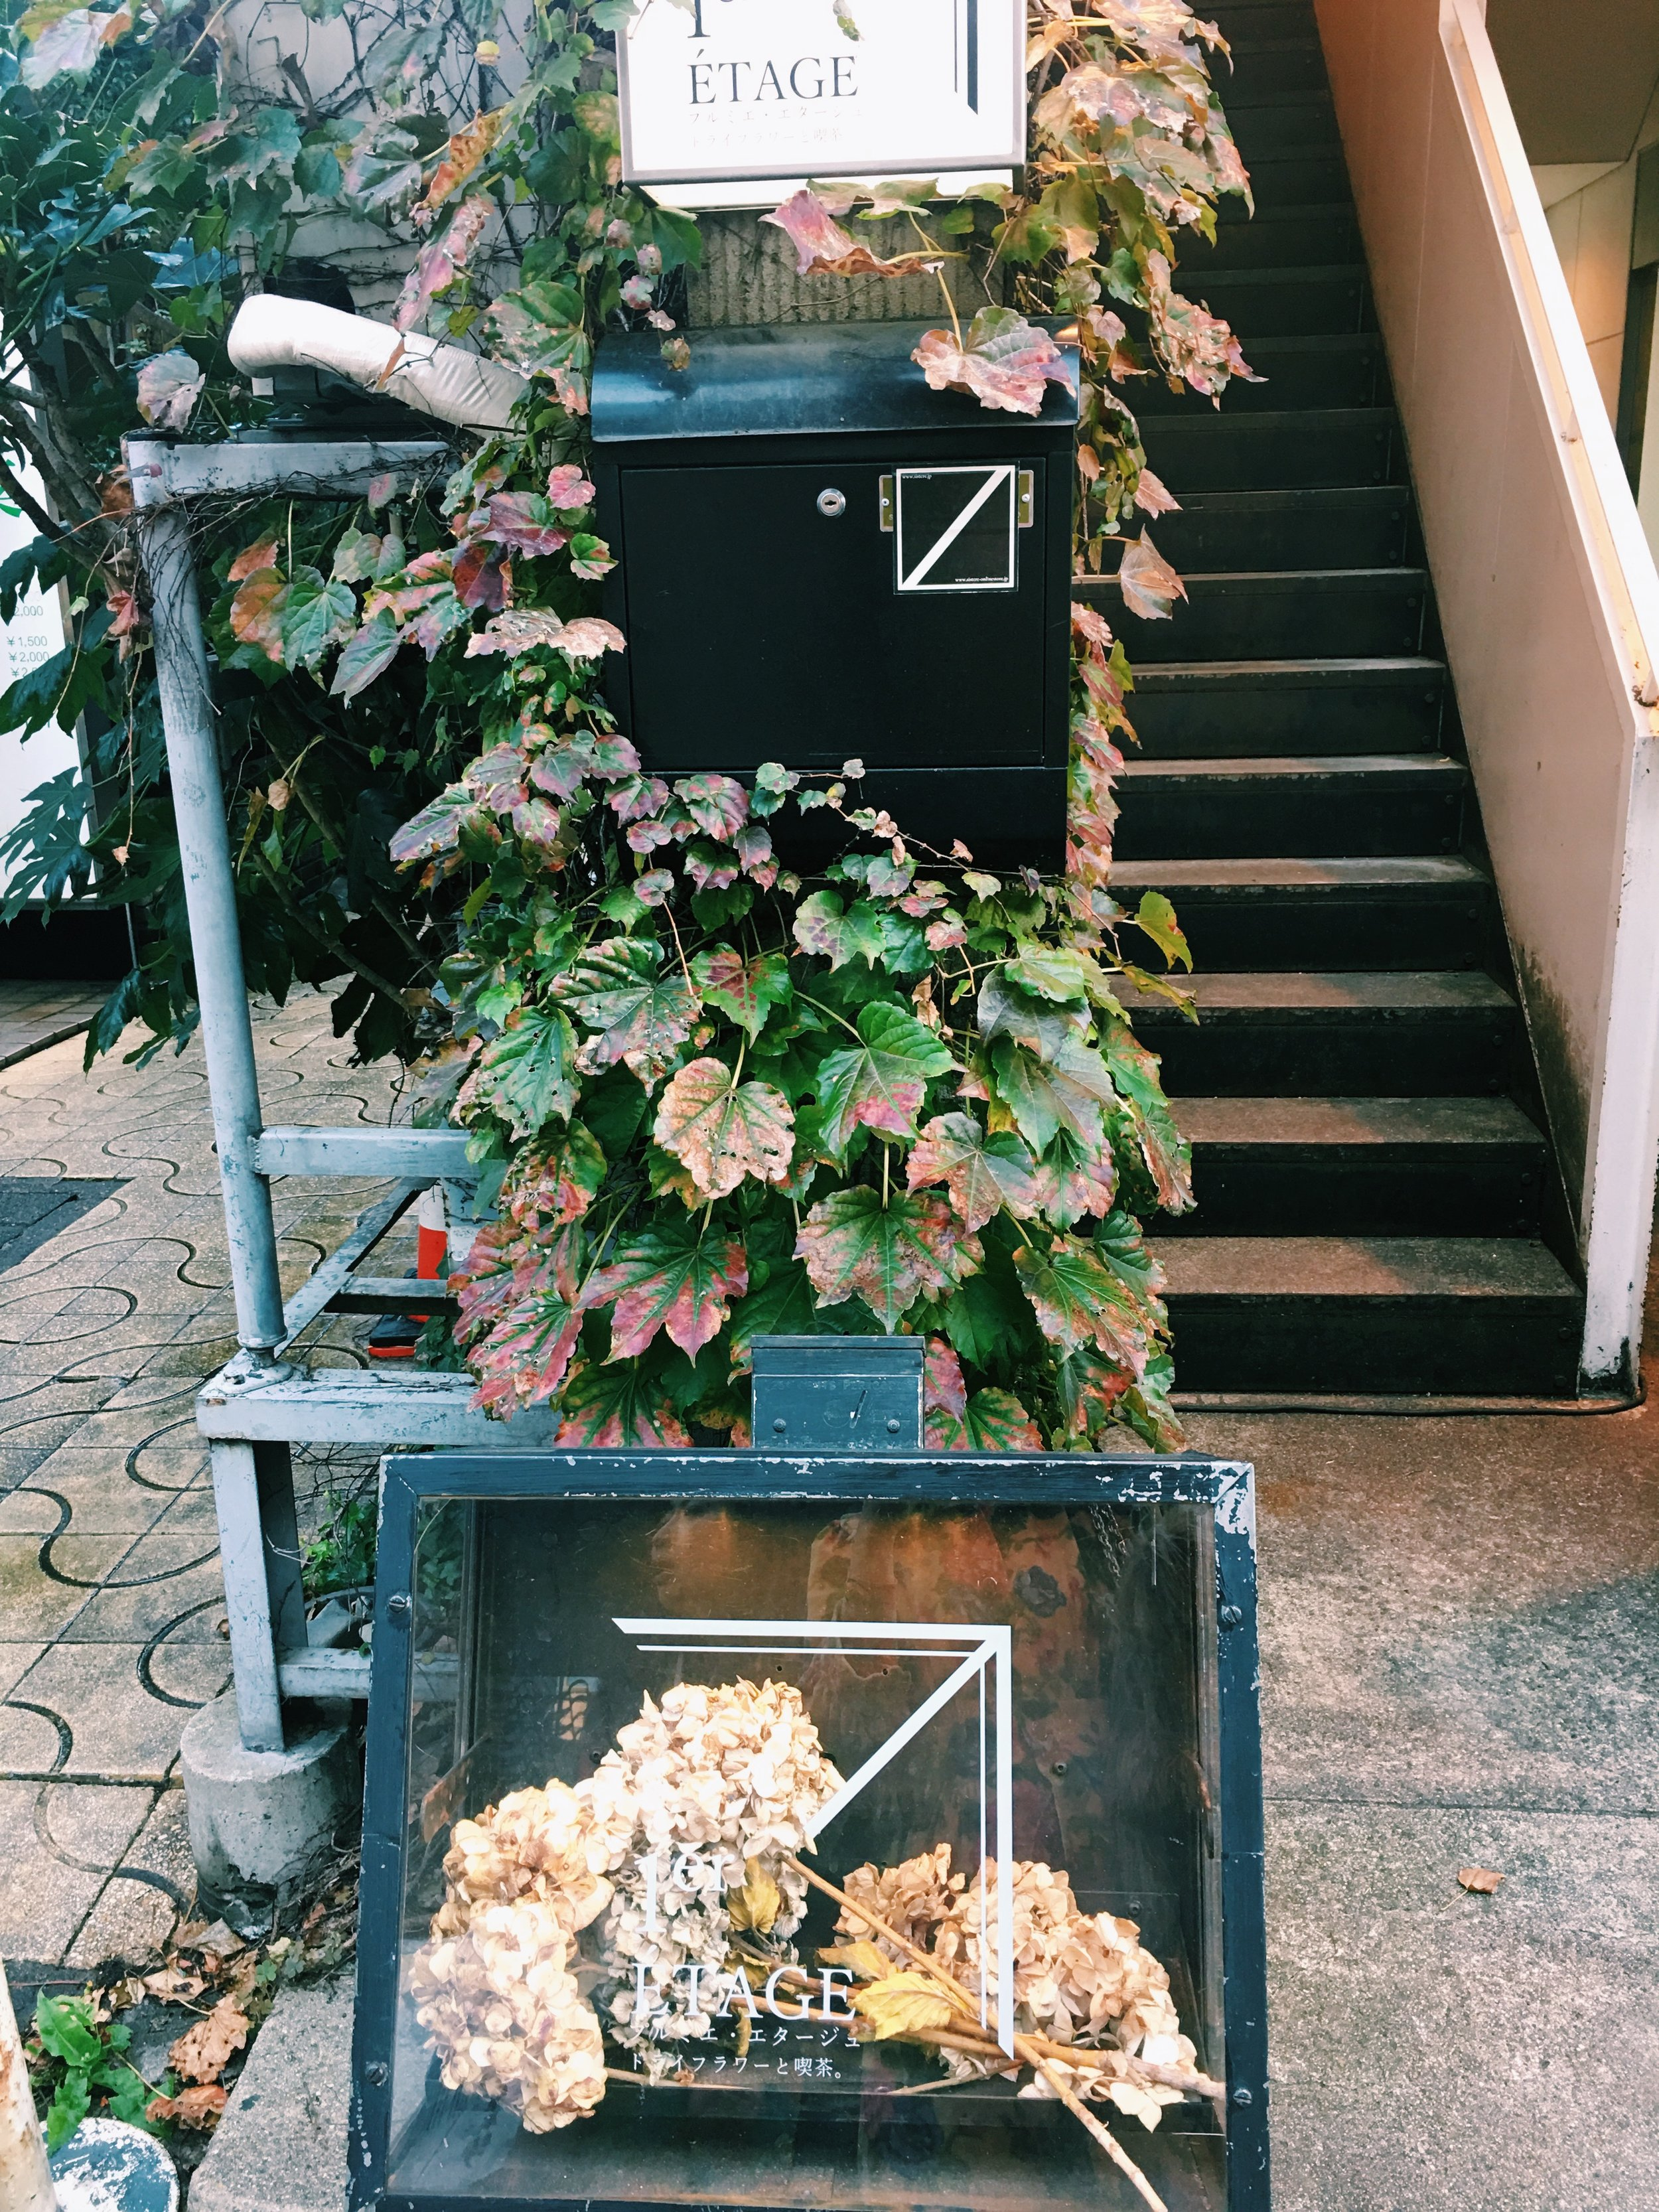 This is a dry flower cafe on the upstairs, the cafe is full of dry flowers and leaves, very beautiful but it has so strong dry plants smile, so I didn't eat there.